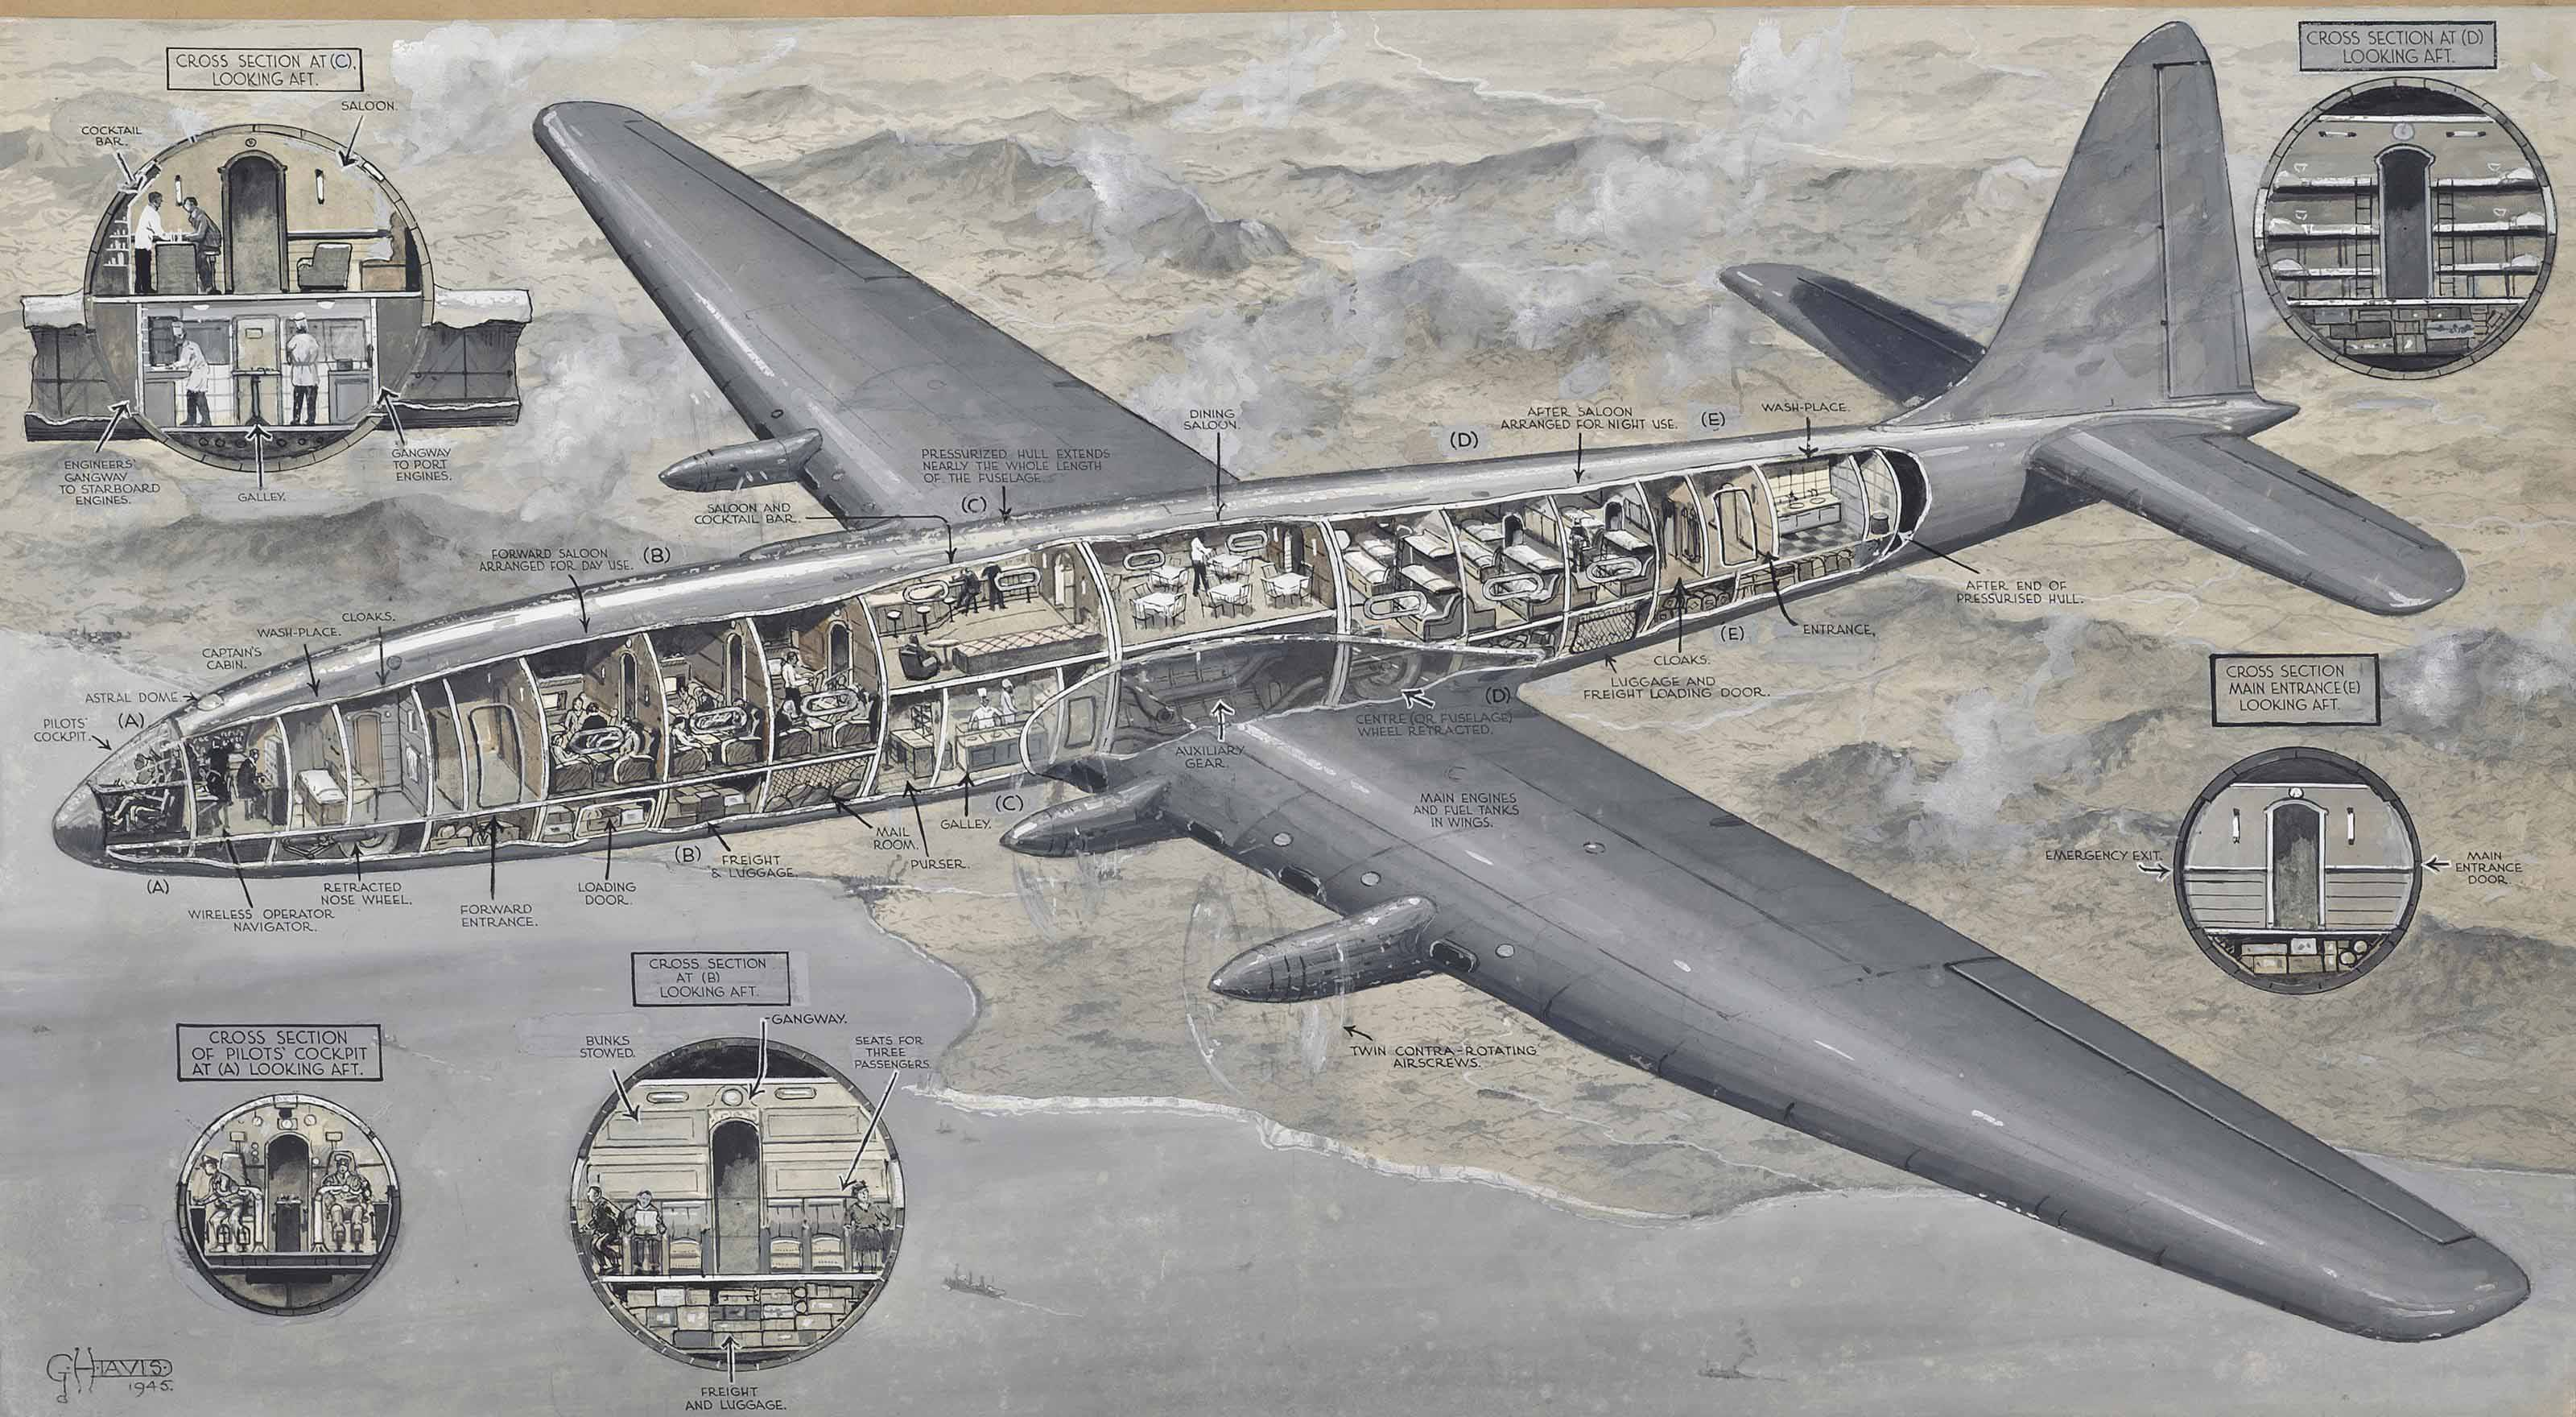 The 'Bristol Brabazon 1' airliner, 1945 (illustrated); The modern airliner 'Britannia', 1953; The 'Comet 4' passenger plane, 1956; The evolution of the aeroplane cockpit: From the 1909 Bleriot to the 1938 De Havilland; and A depiction of 'British aircraft of tomorrow', 1961